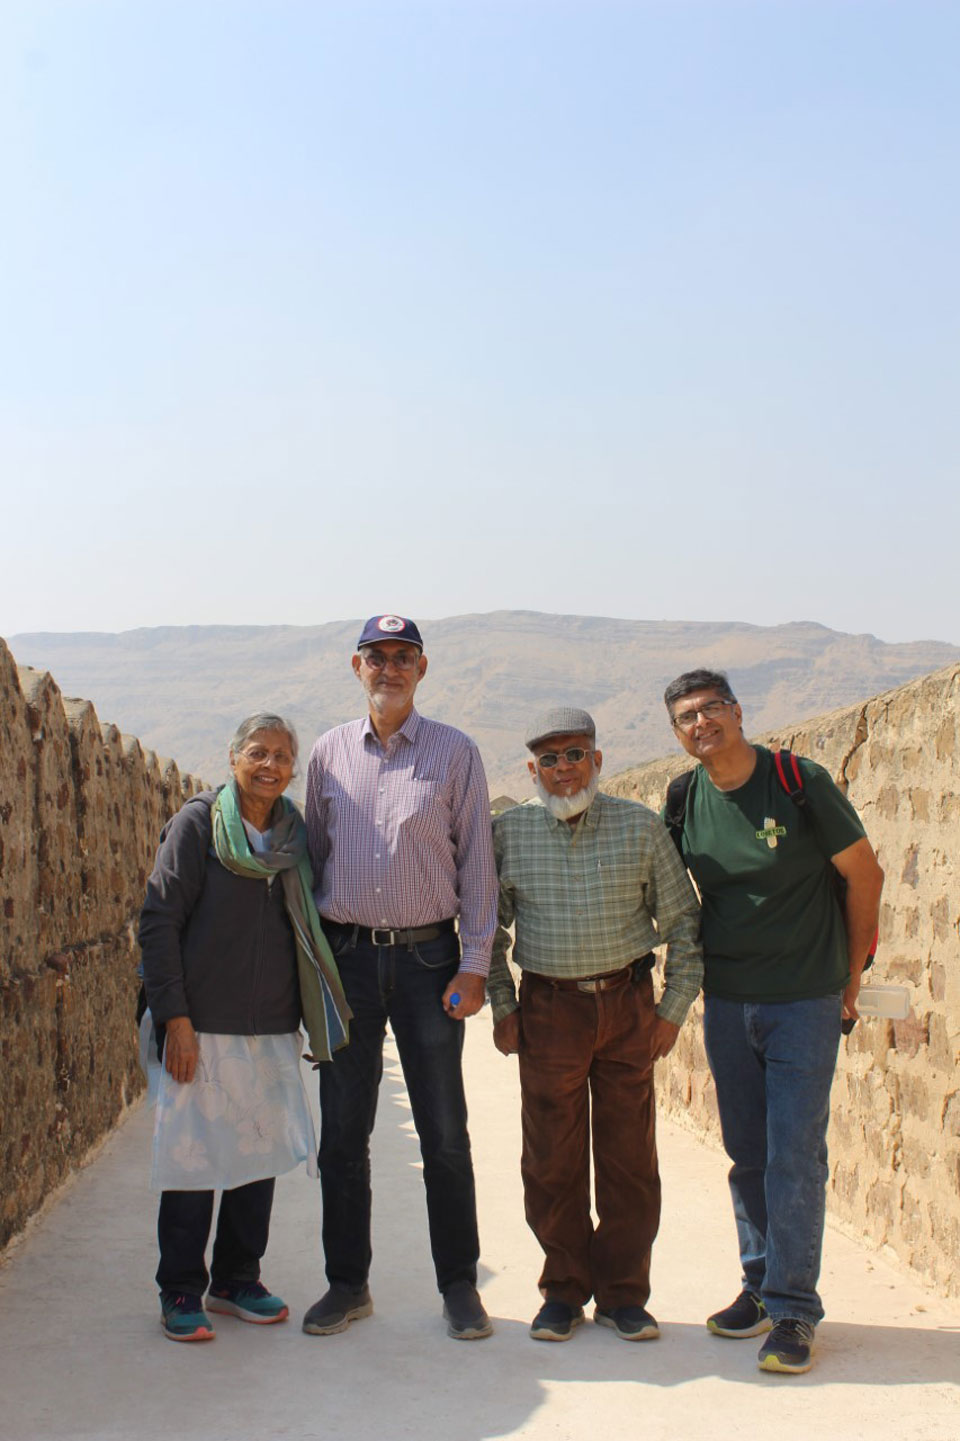 Engr. Iqbal Khan with the Californian family on the walkway of the Miri Kot